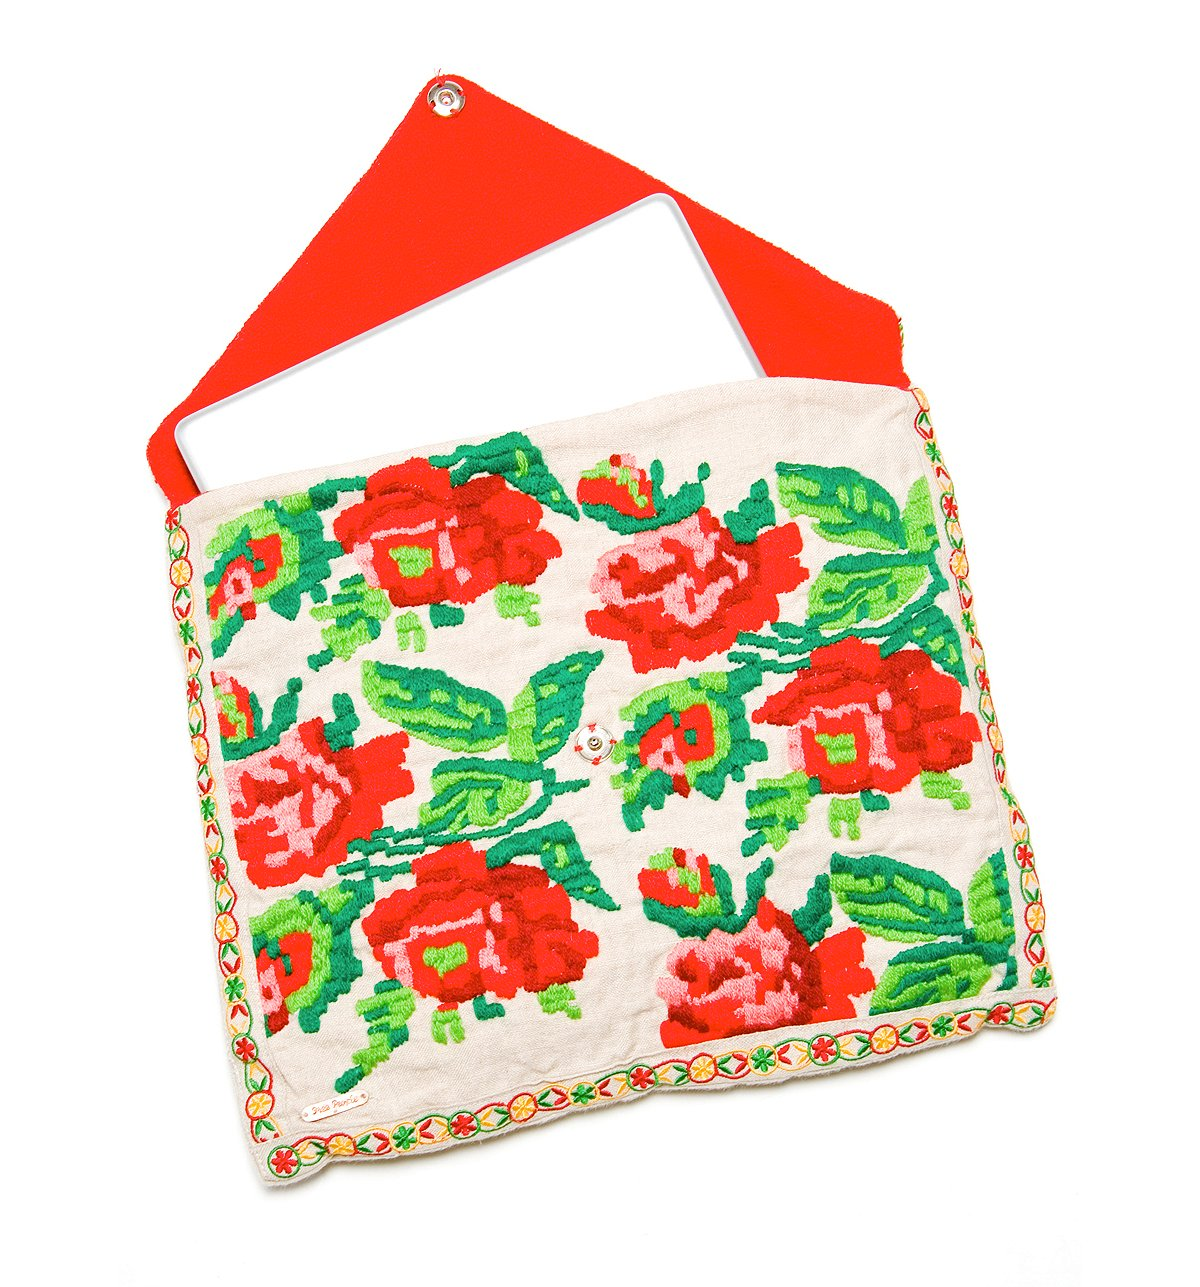 Embroidered Roses Laptop Cozy